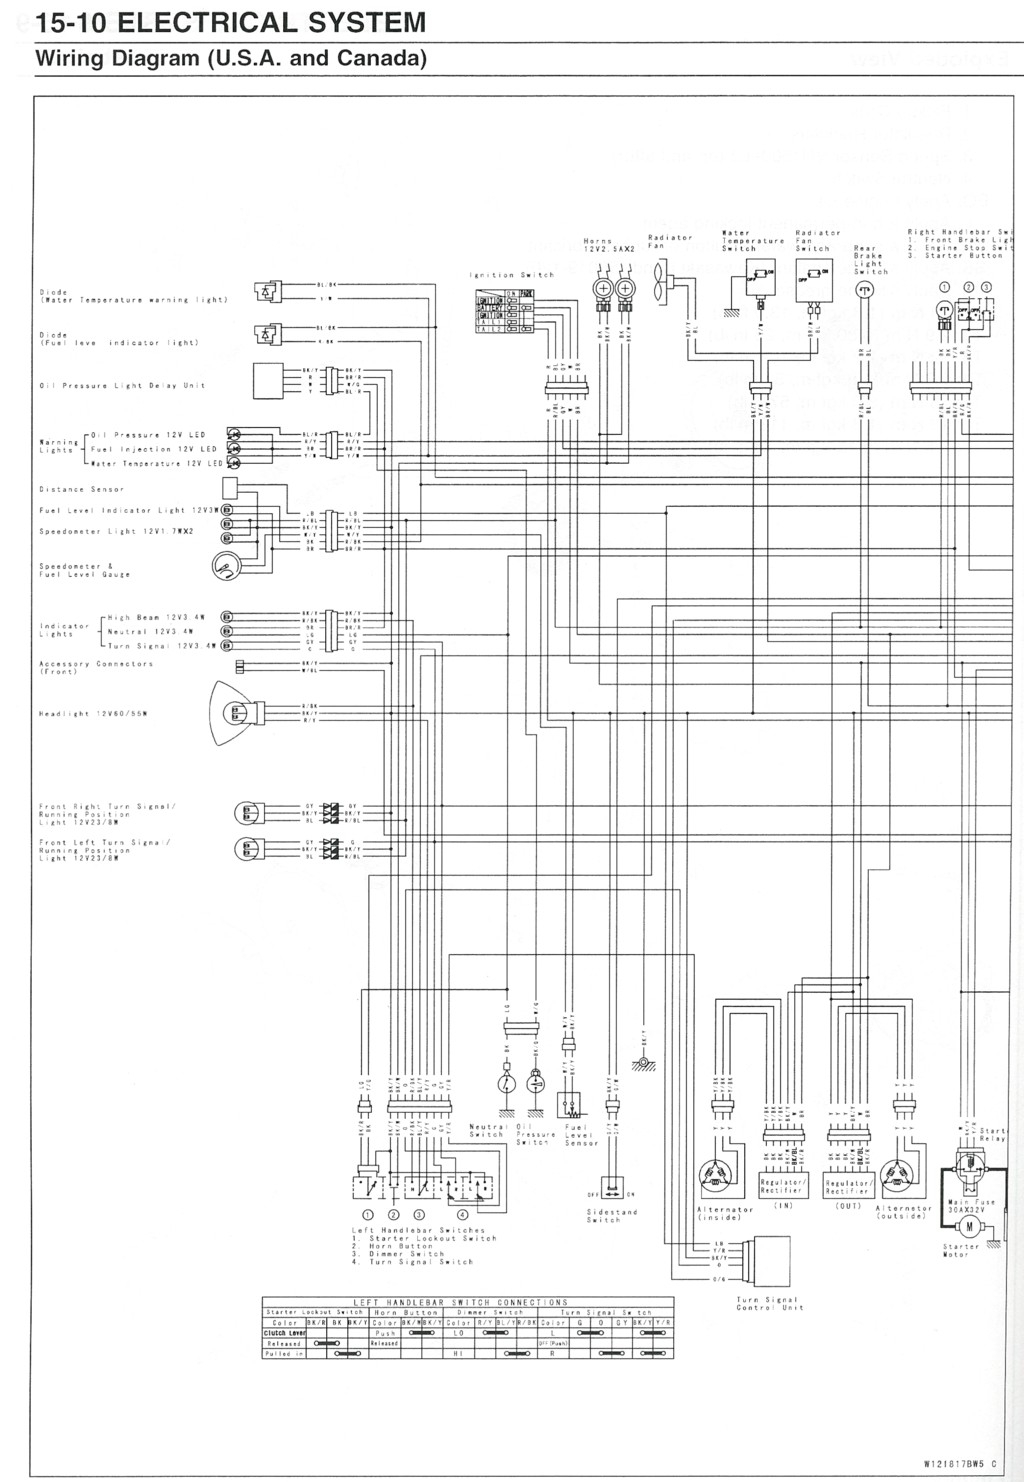 nomad_wiring_diagram_carbed_p1 vulcan wiring diagrams gadget's fixit page kawasaki vulcan 800 wiring diagram at edmiracle.co